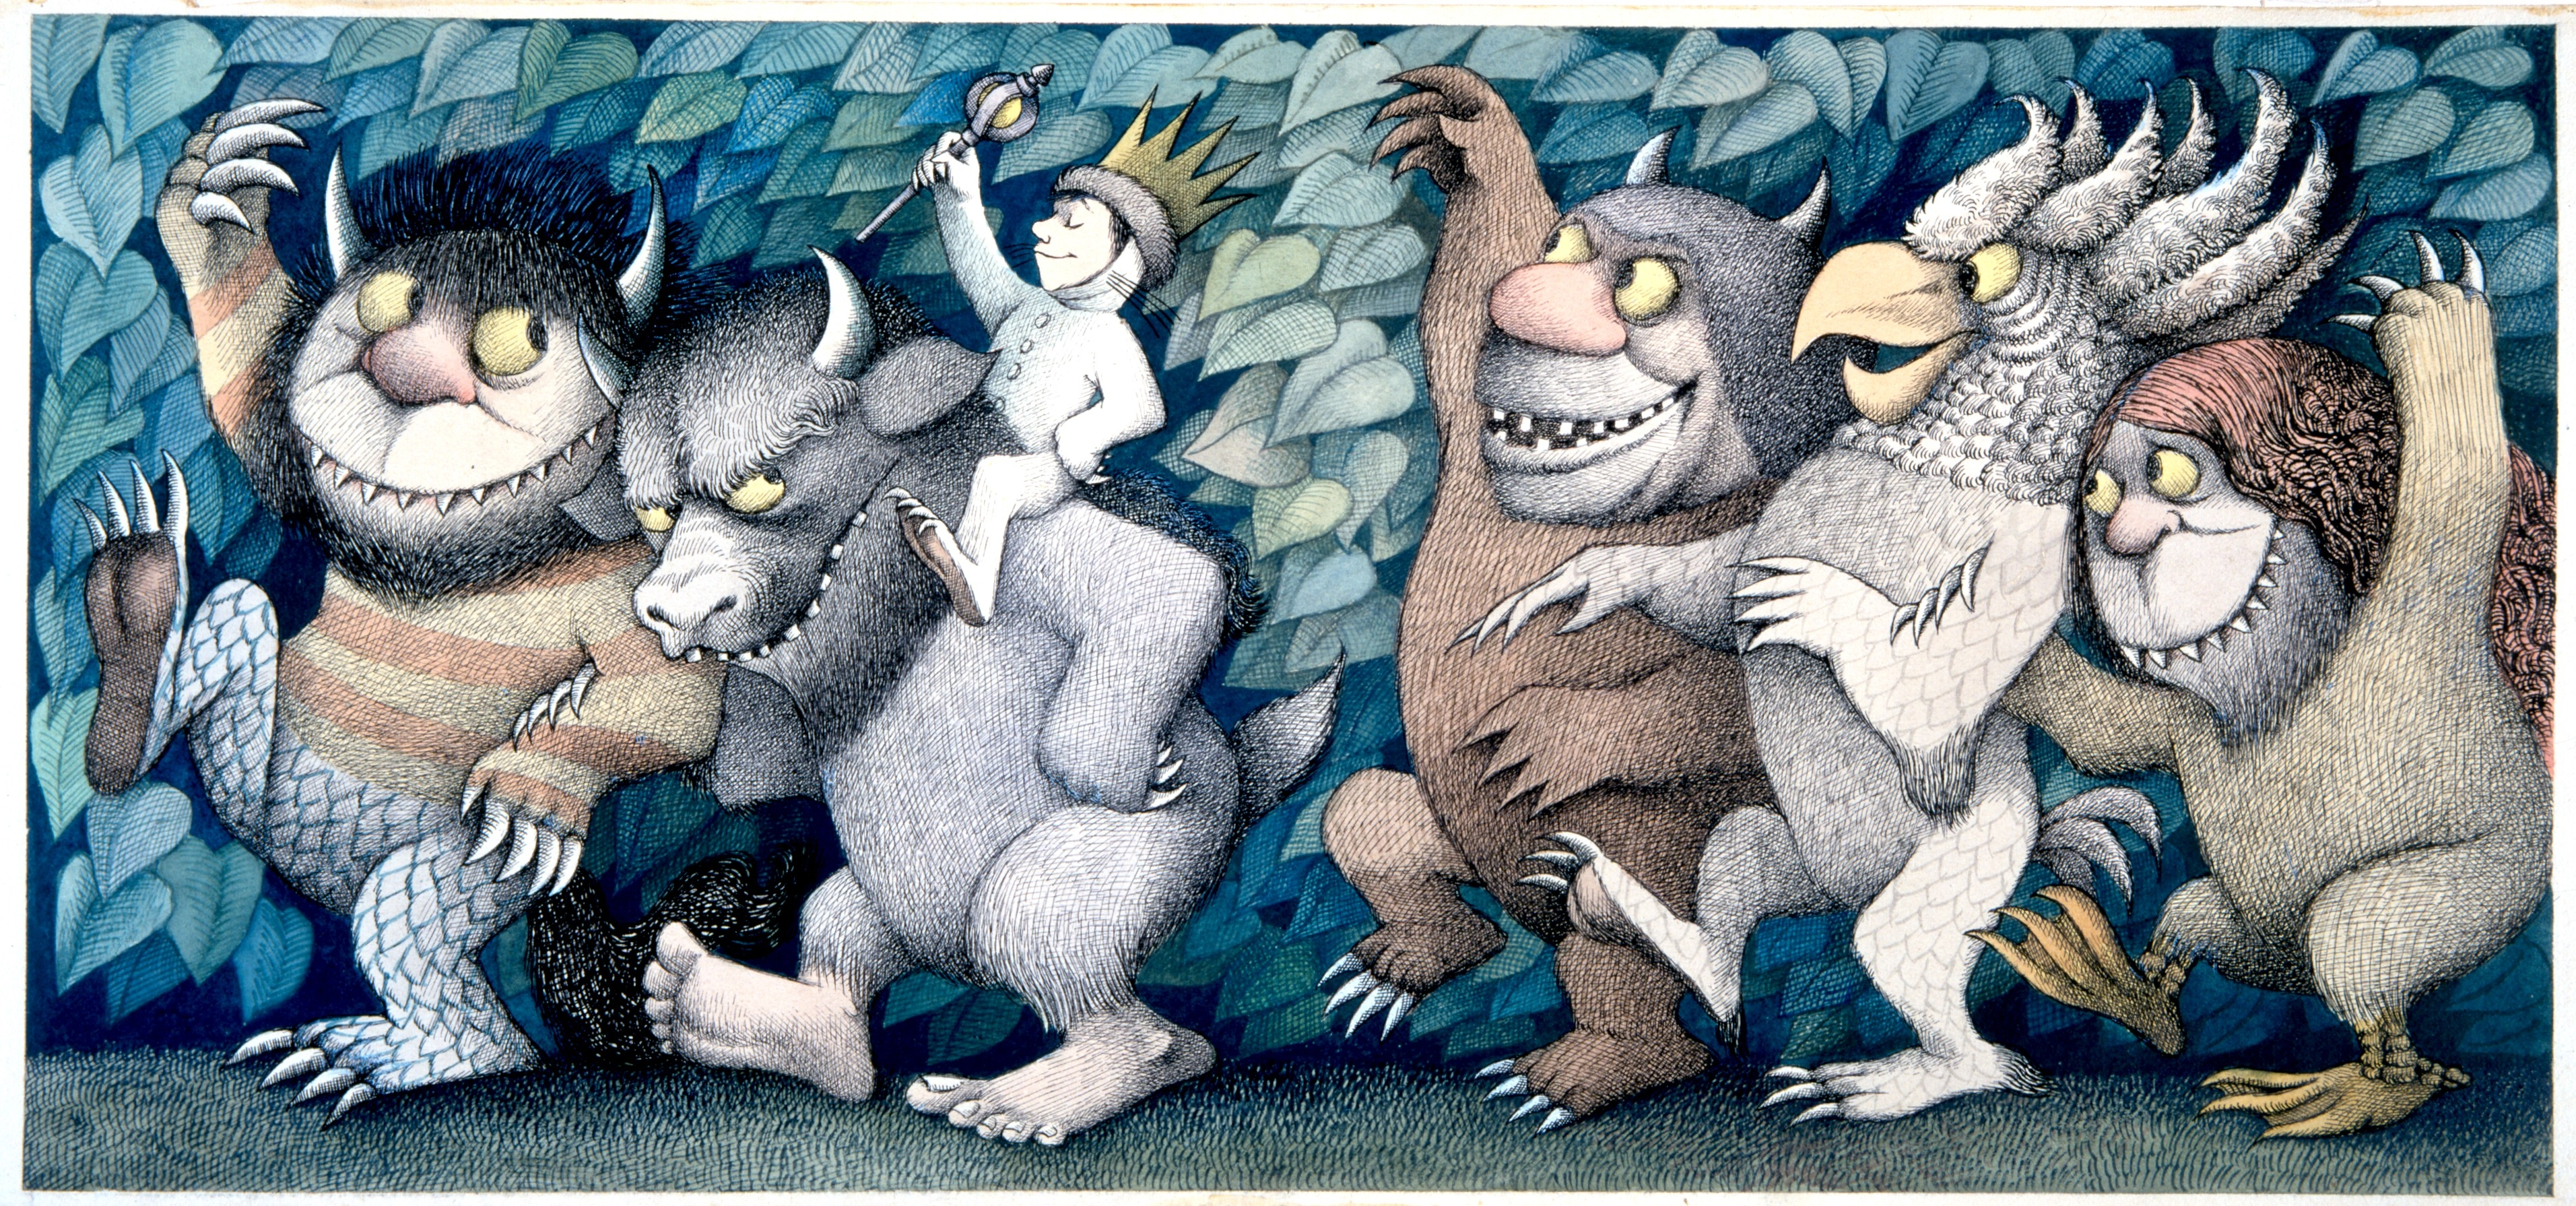 Where The Wild Things Are Backgrounds, Compatible - PC, Mobile, Gadgets| 3825x1790 px